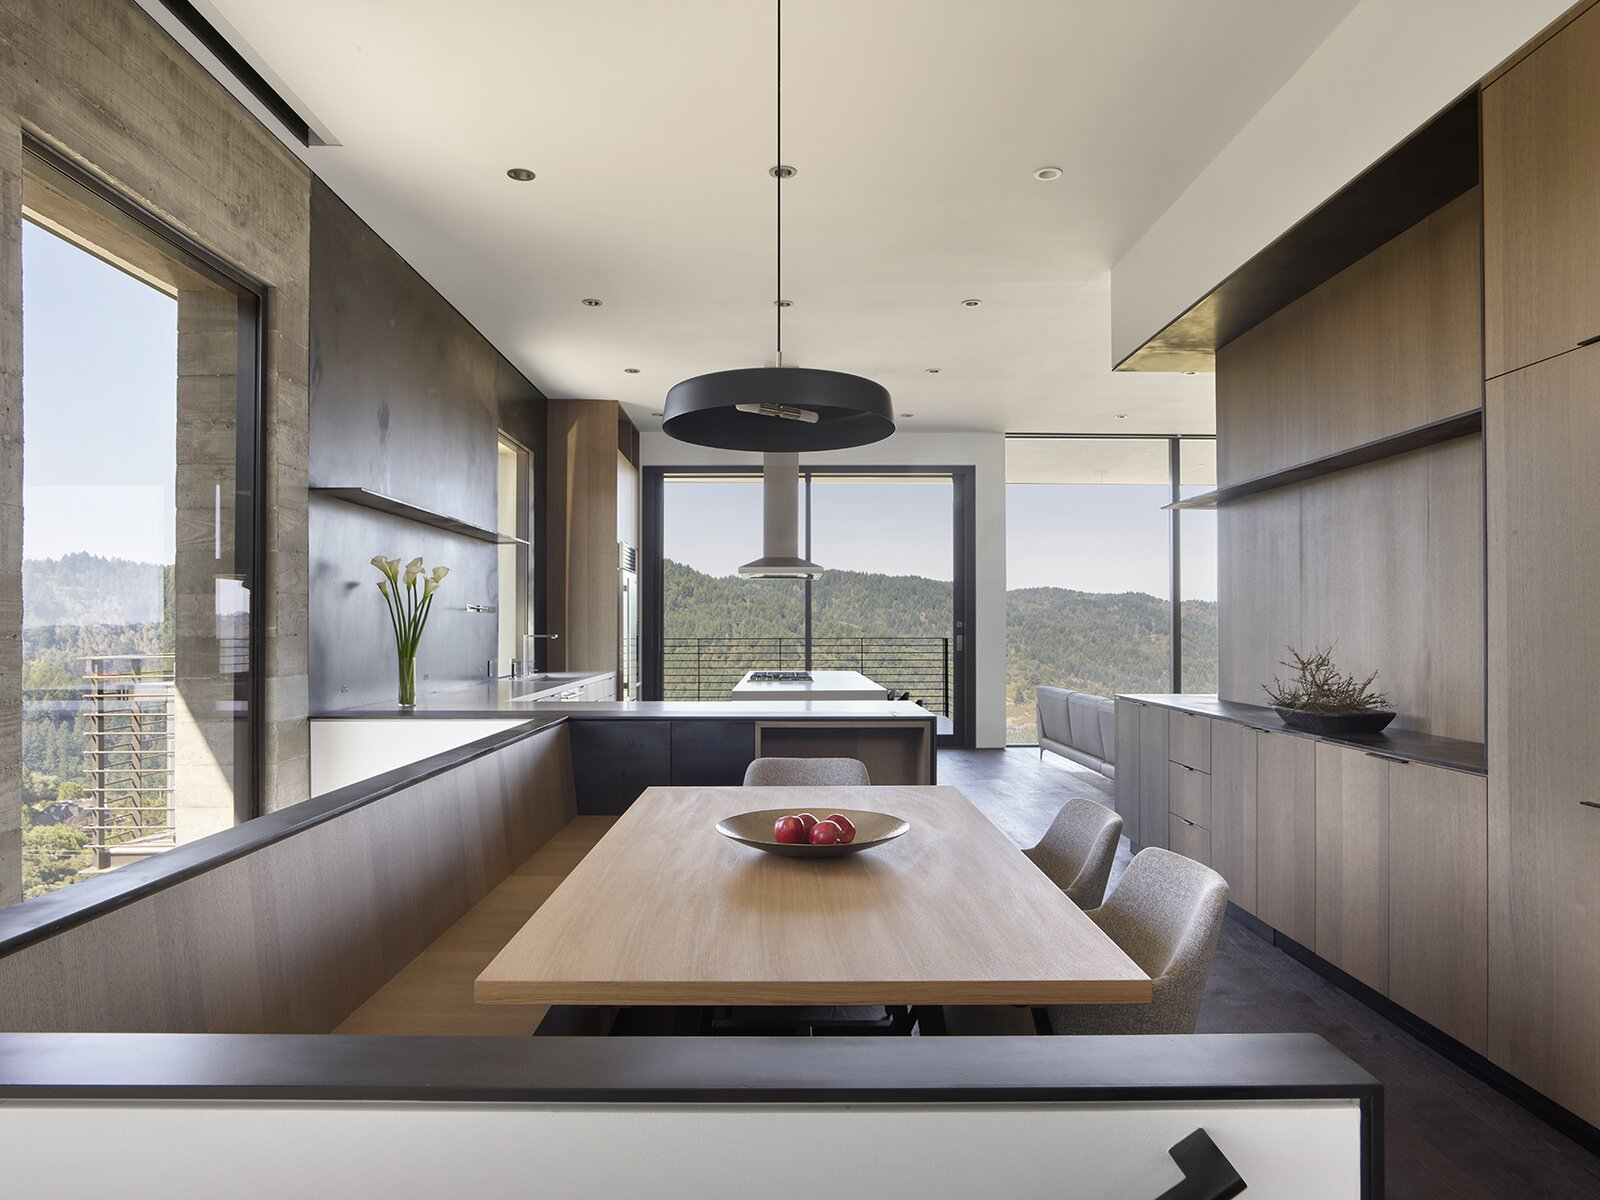 Dining, Bench, Accent, Table, Chair, Pendant, Dark Hardwood, Lamps, Ceiling, Shelves, and Storage  Dining Chair Shelves Accent Photos from Saratoga Canyon